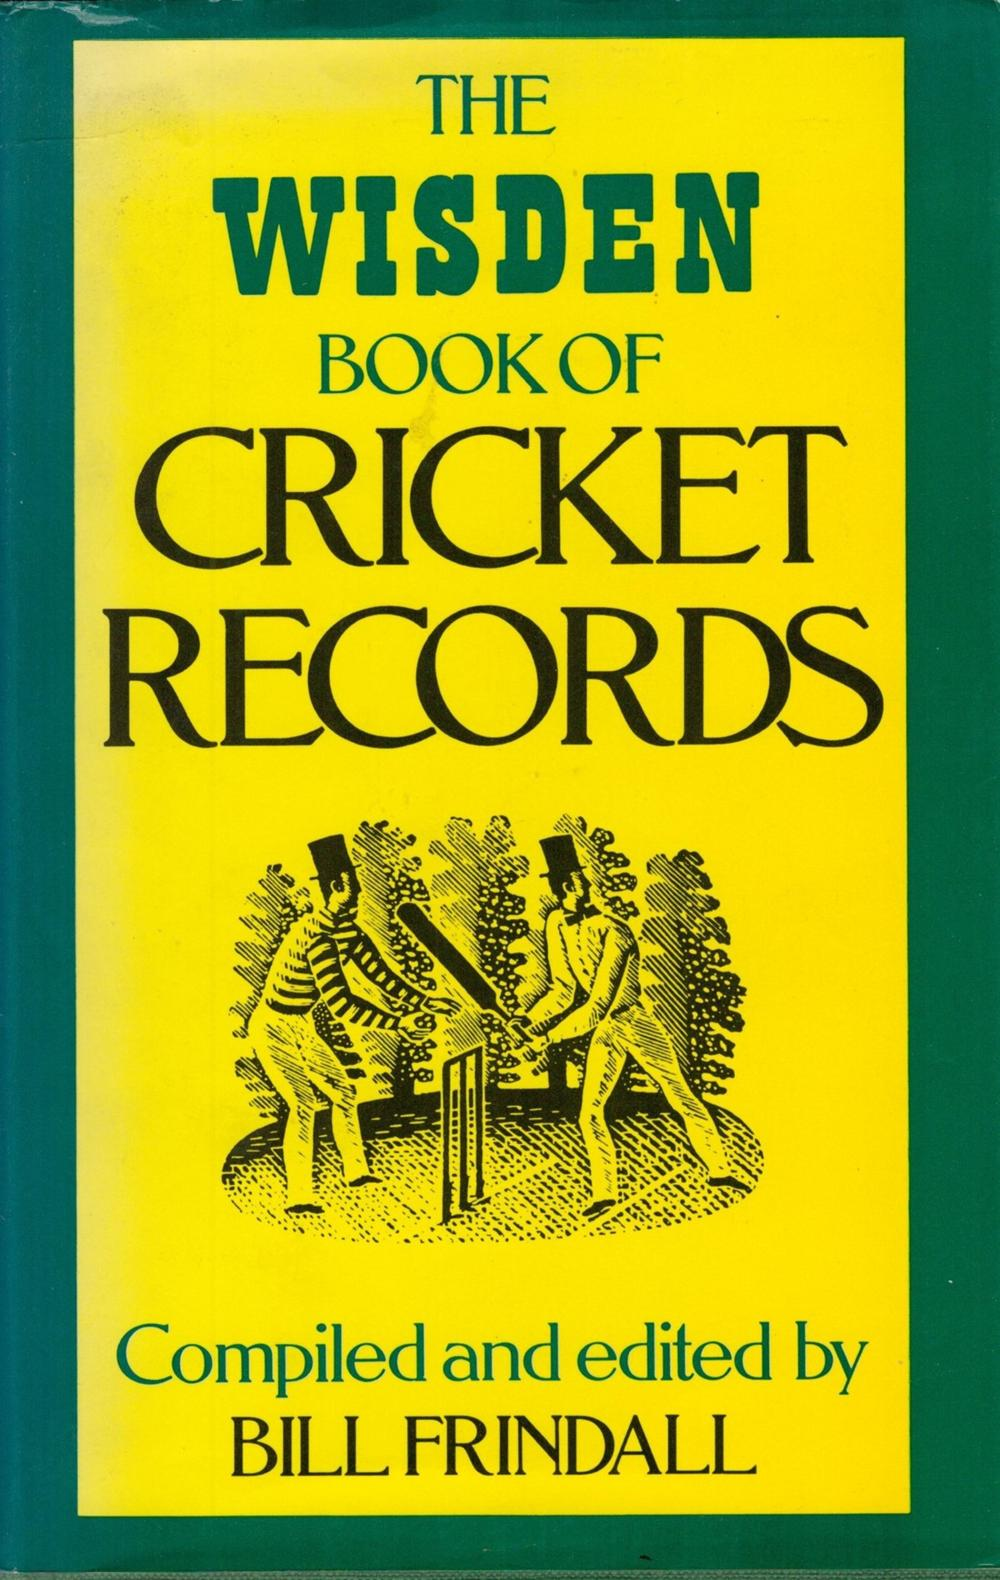 Cricket, The Wisden Book of Cricket Records compiled and edited by Bill Frindall Published in